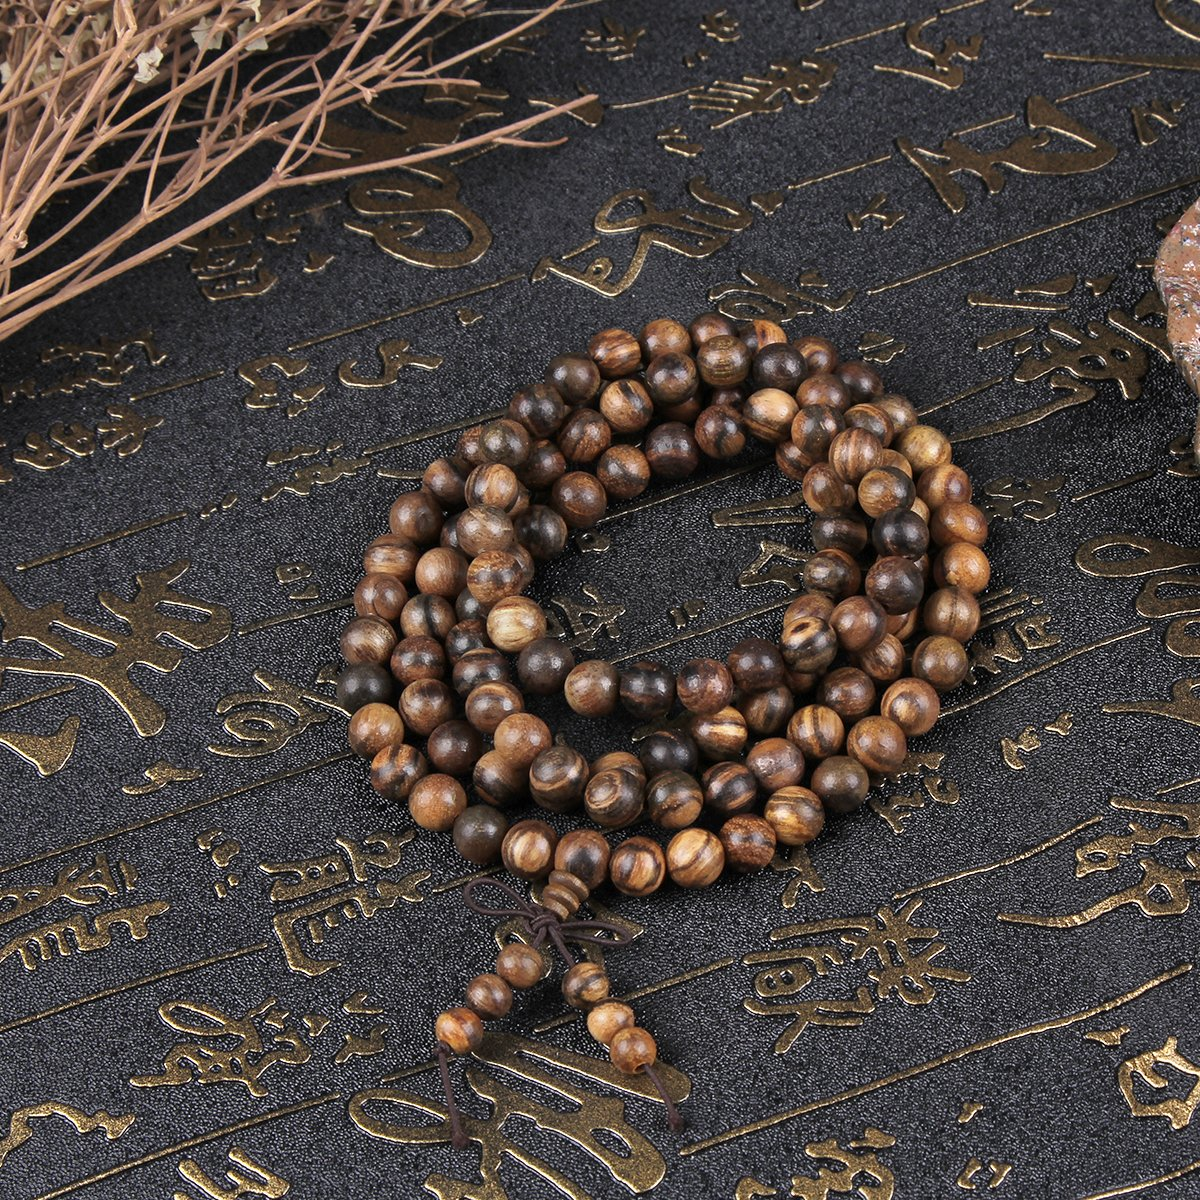 EVBEA 2PCS 6mm 8mm Buddha Bracelet Necklace Prayer Beads Rosary Wood Bracelets for Men (8mm bead) by EVBEA (Image #2)